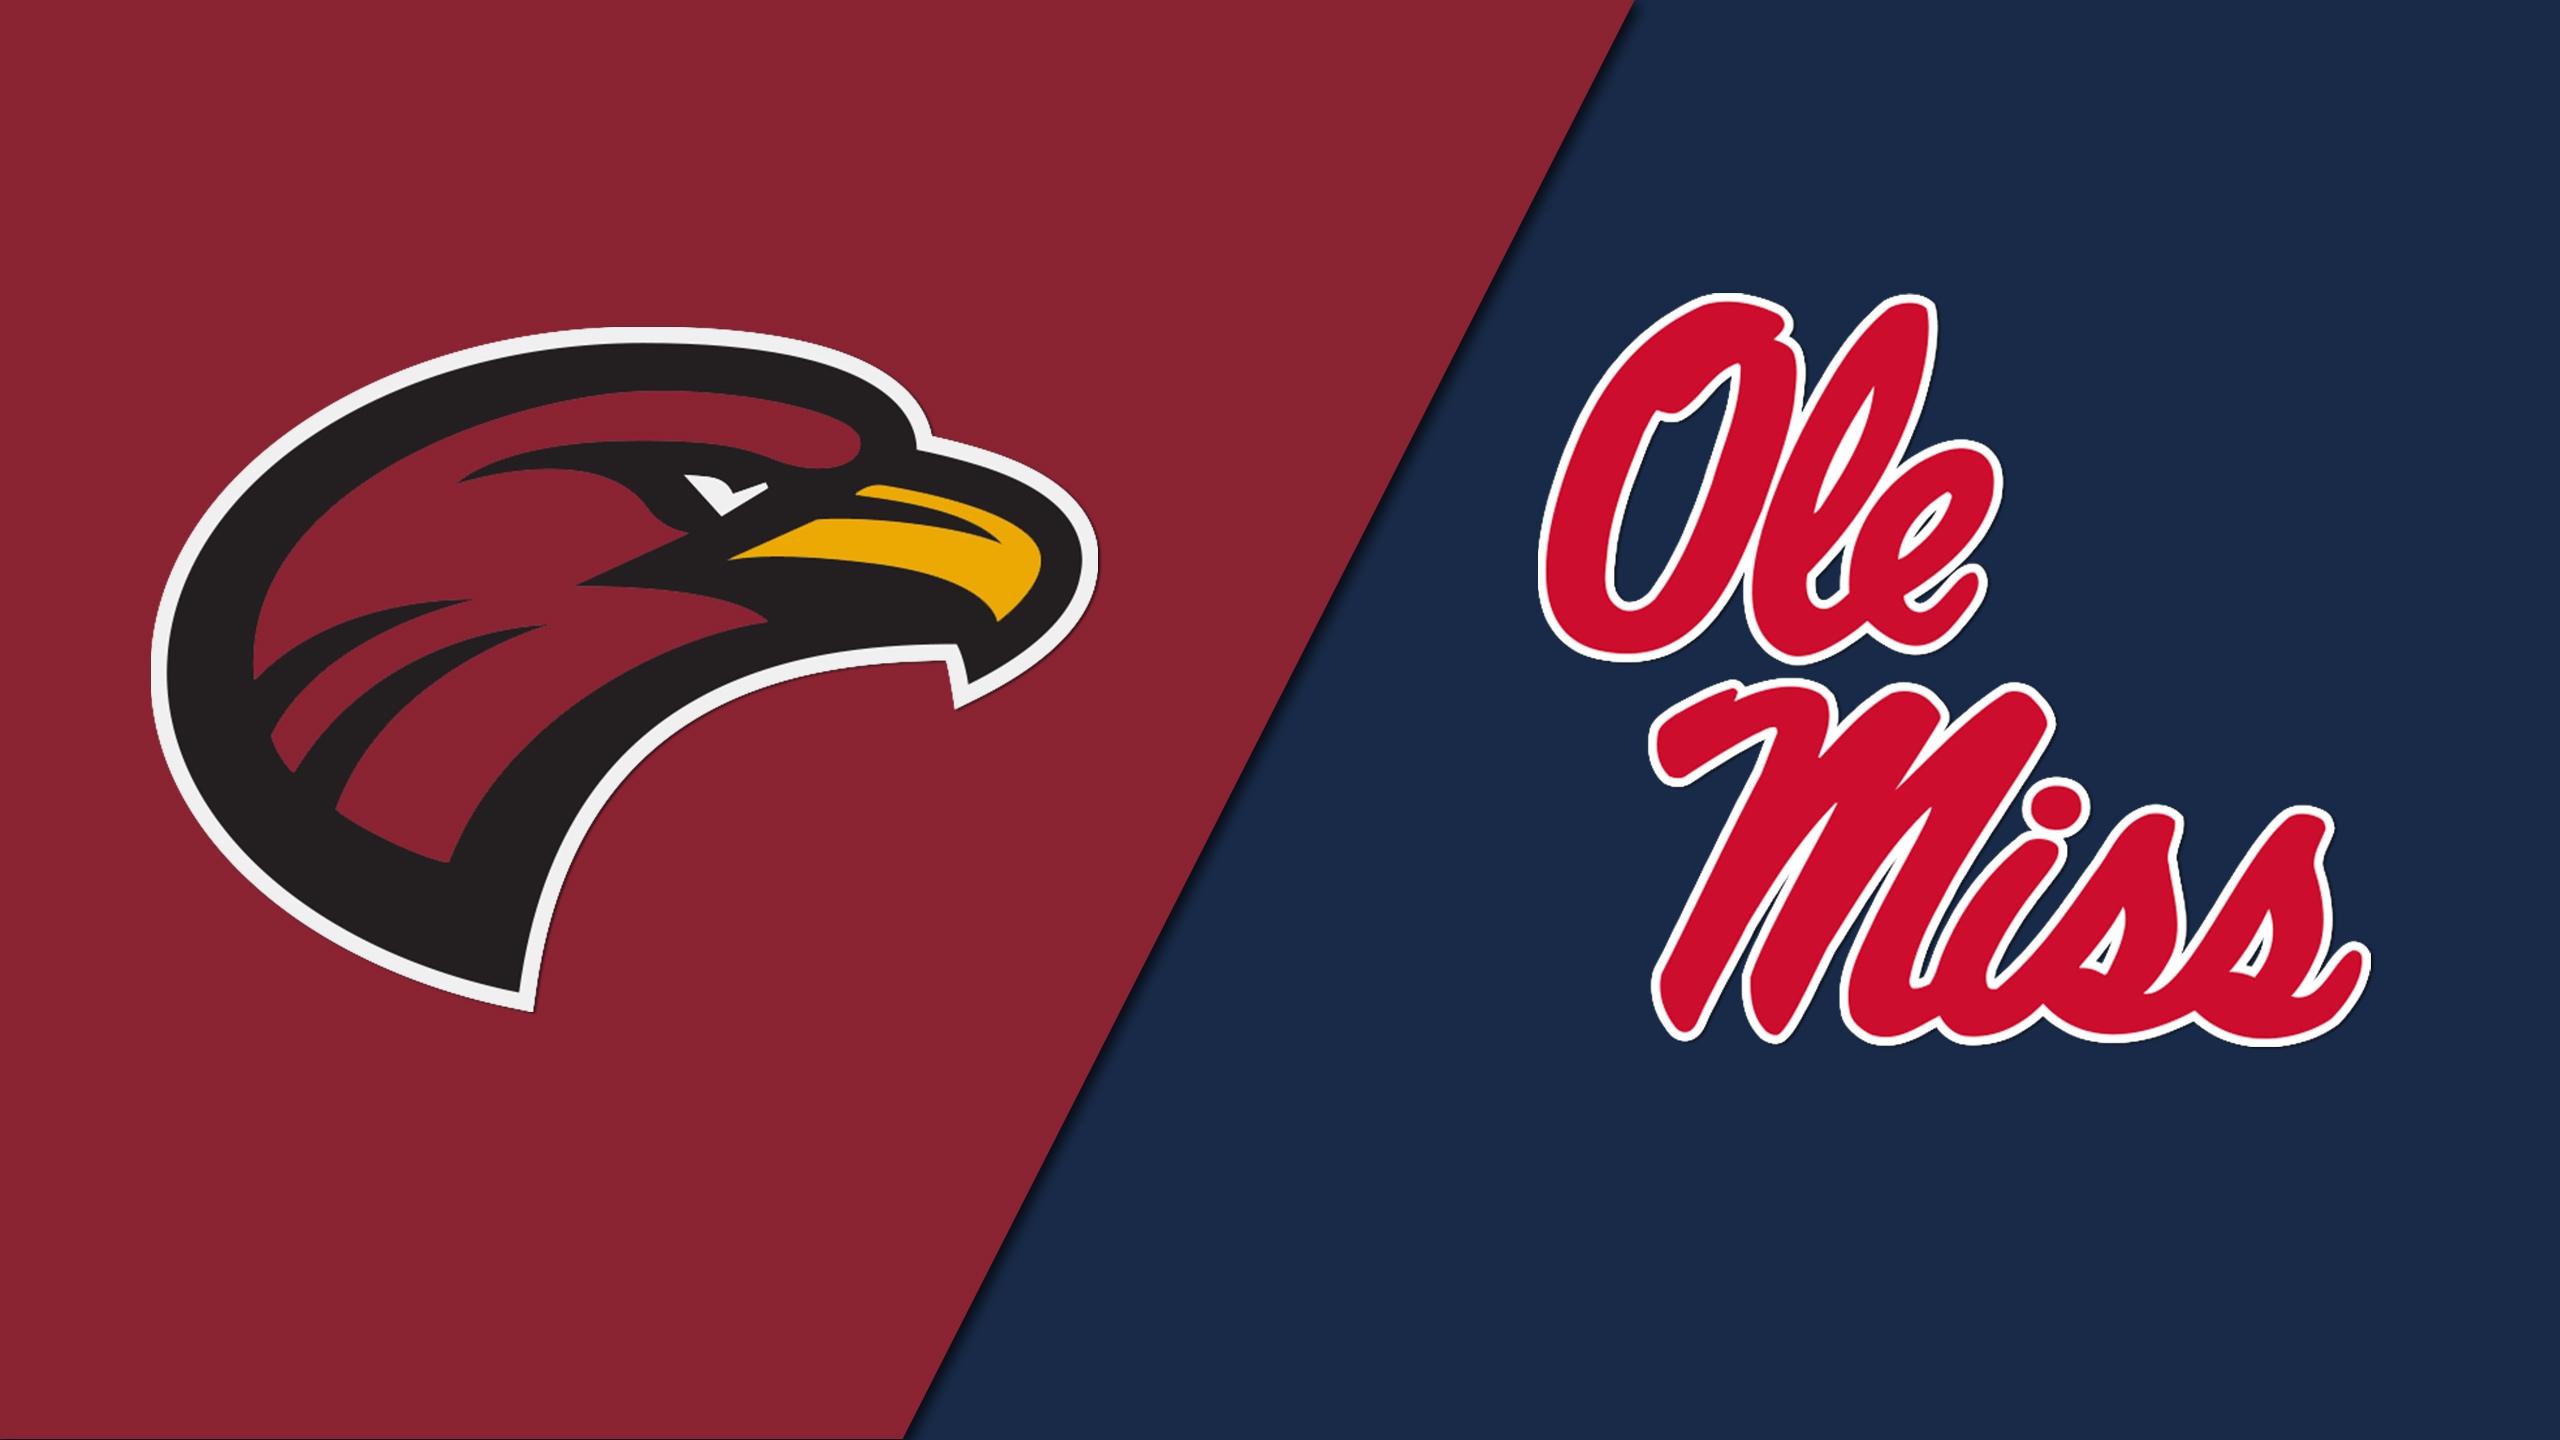 Louisiana-Monroe vs. Ole Miss (re-air)